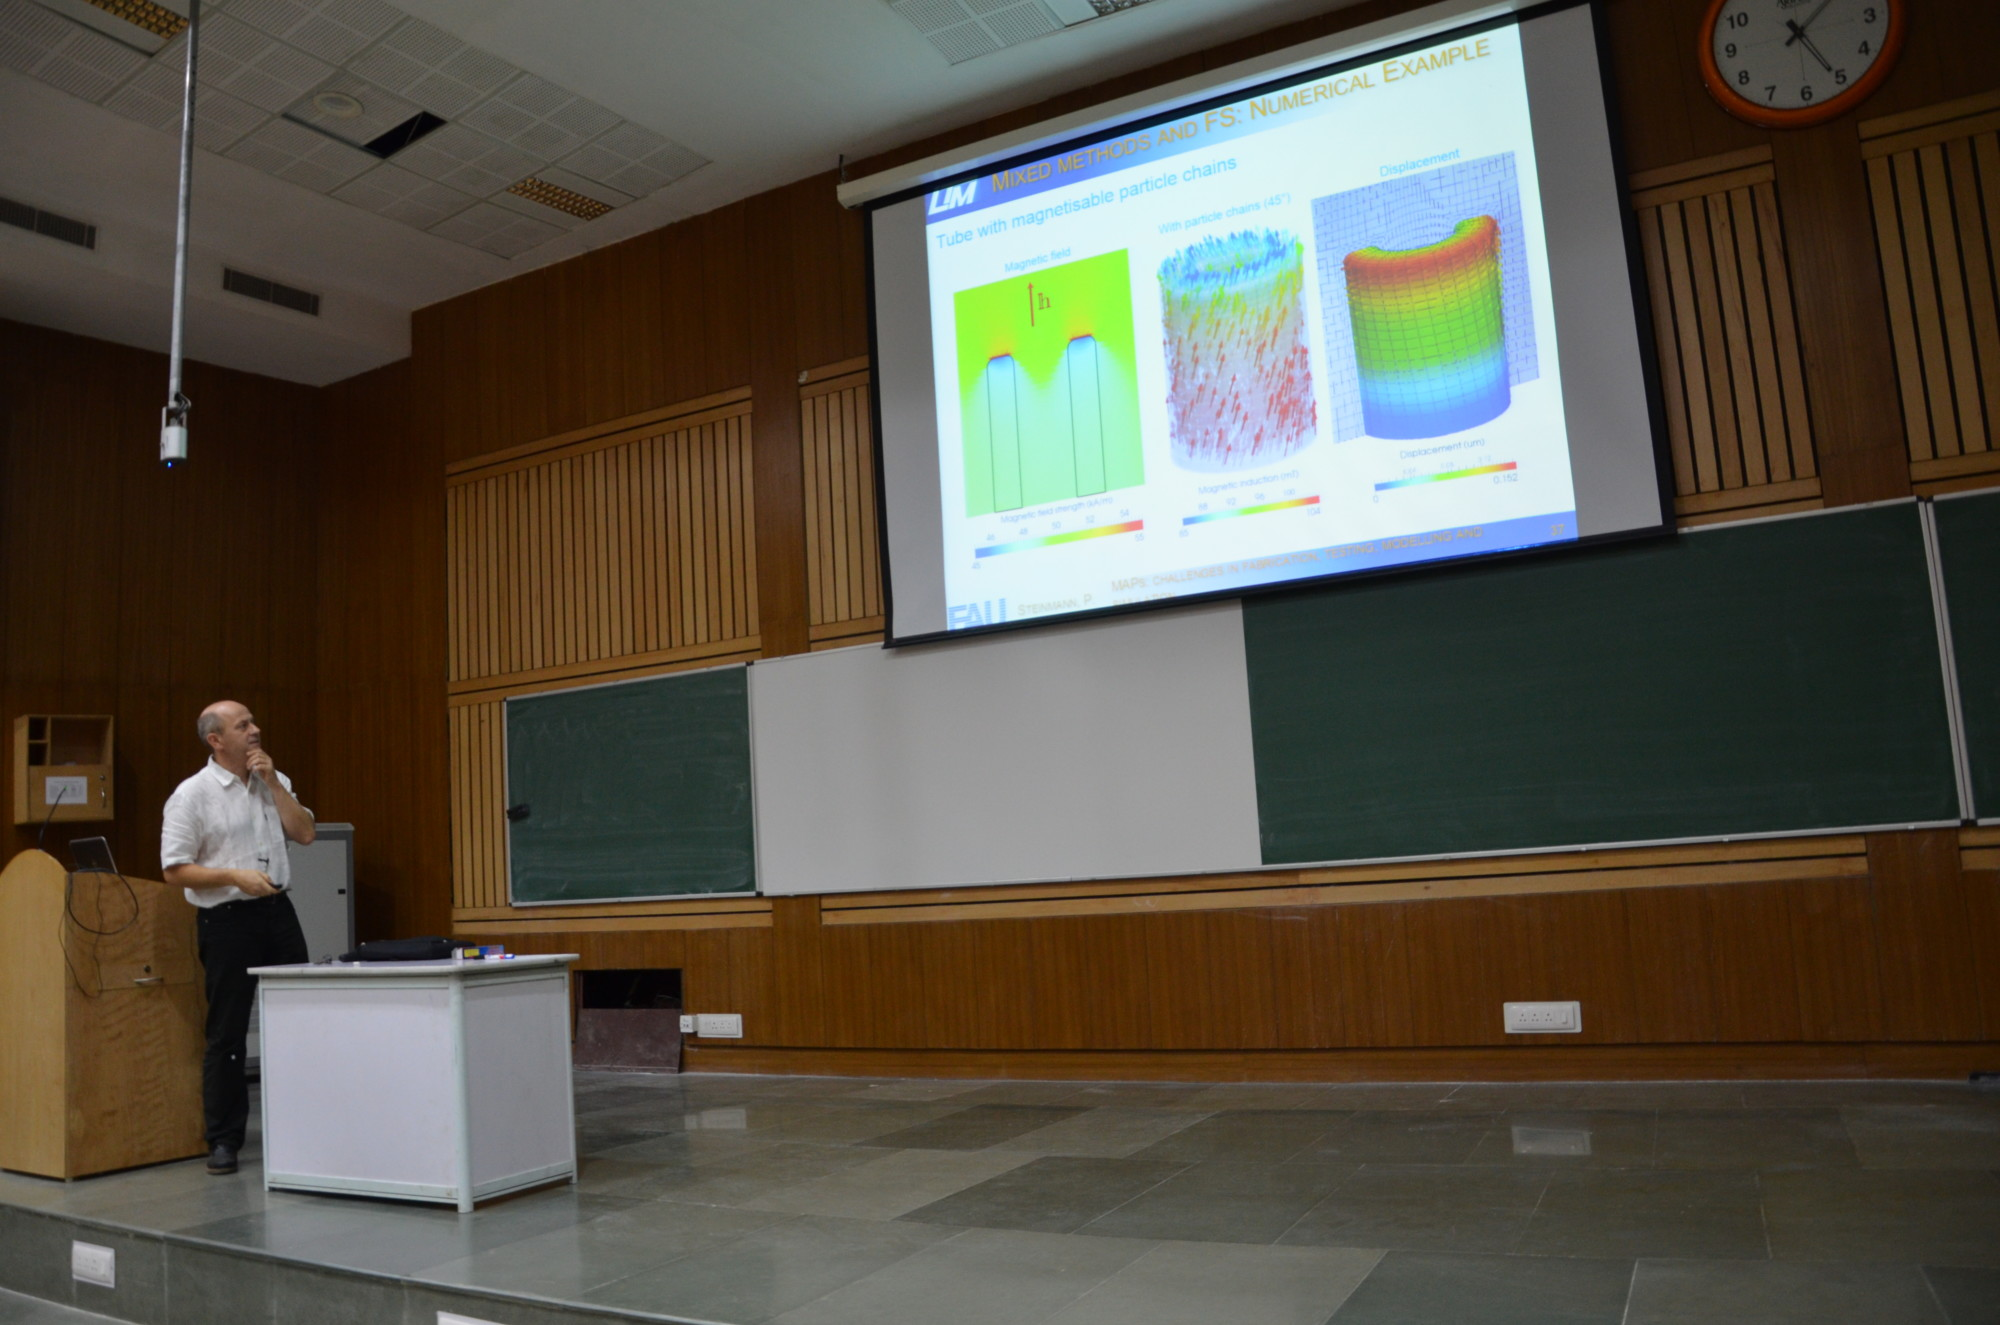 """Prof. Dr. Paul Steinmann giving a lecture on """"Numerical and Experimental Treatment of Magneto-Rheological Elastomers"""" at the Indian Institute of Technology Delhi."""